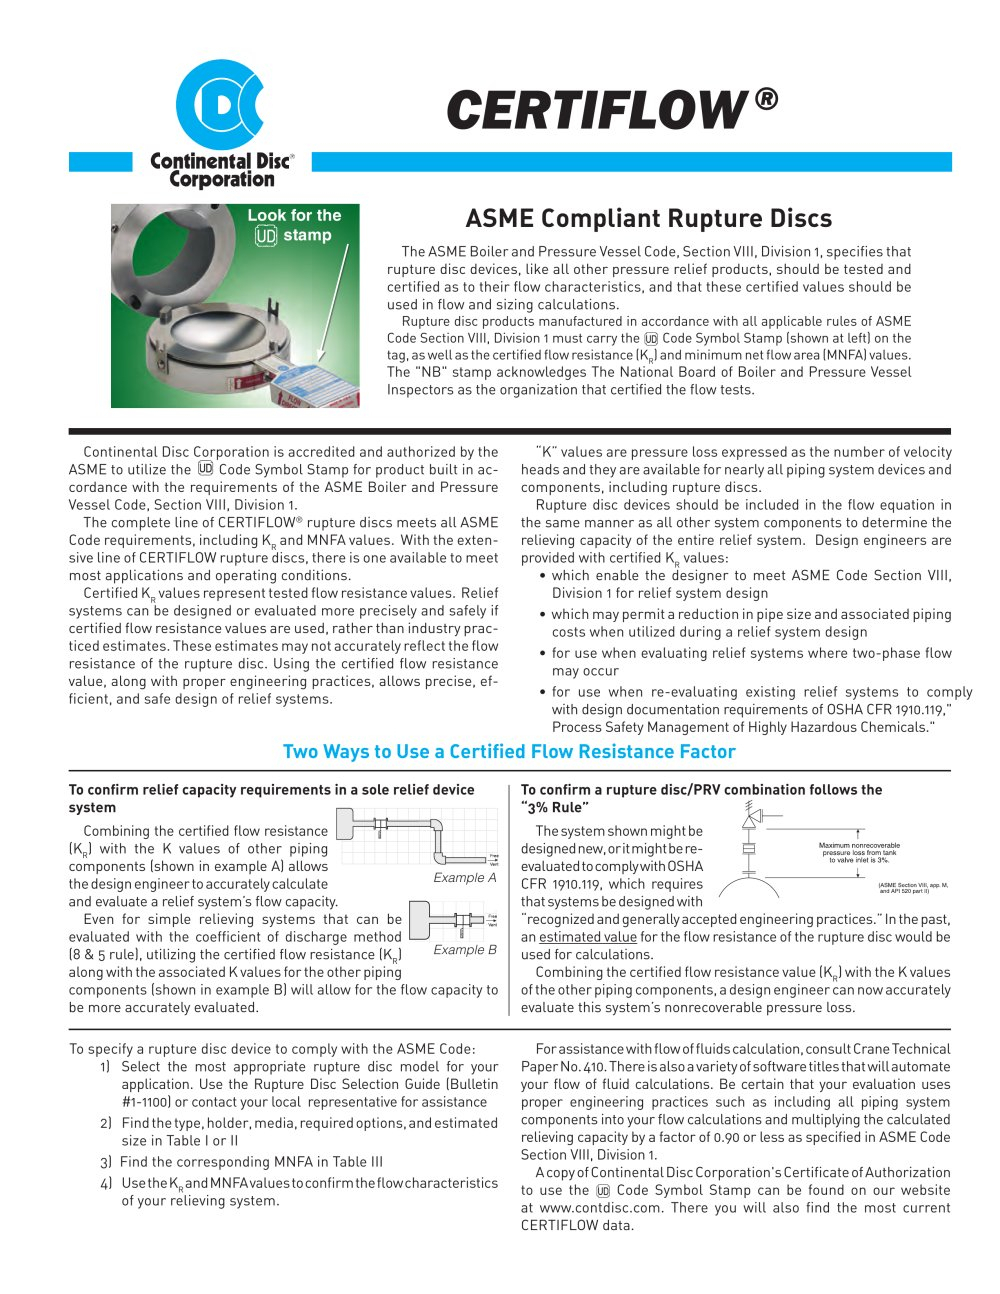 Rupture Disc Sizing Spreadsheet With Certiflow ®  Continental Disc Corp.  Pdf Catalogs  Technical